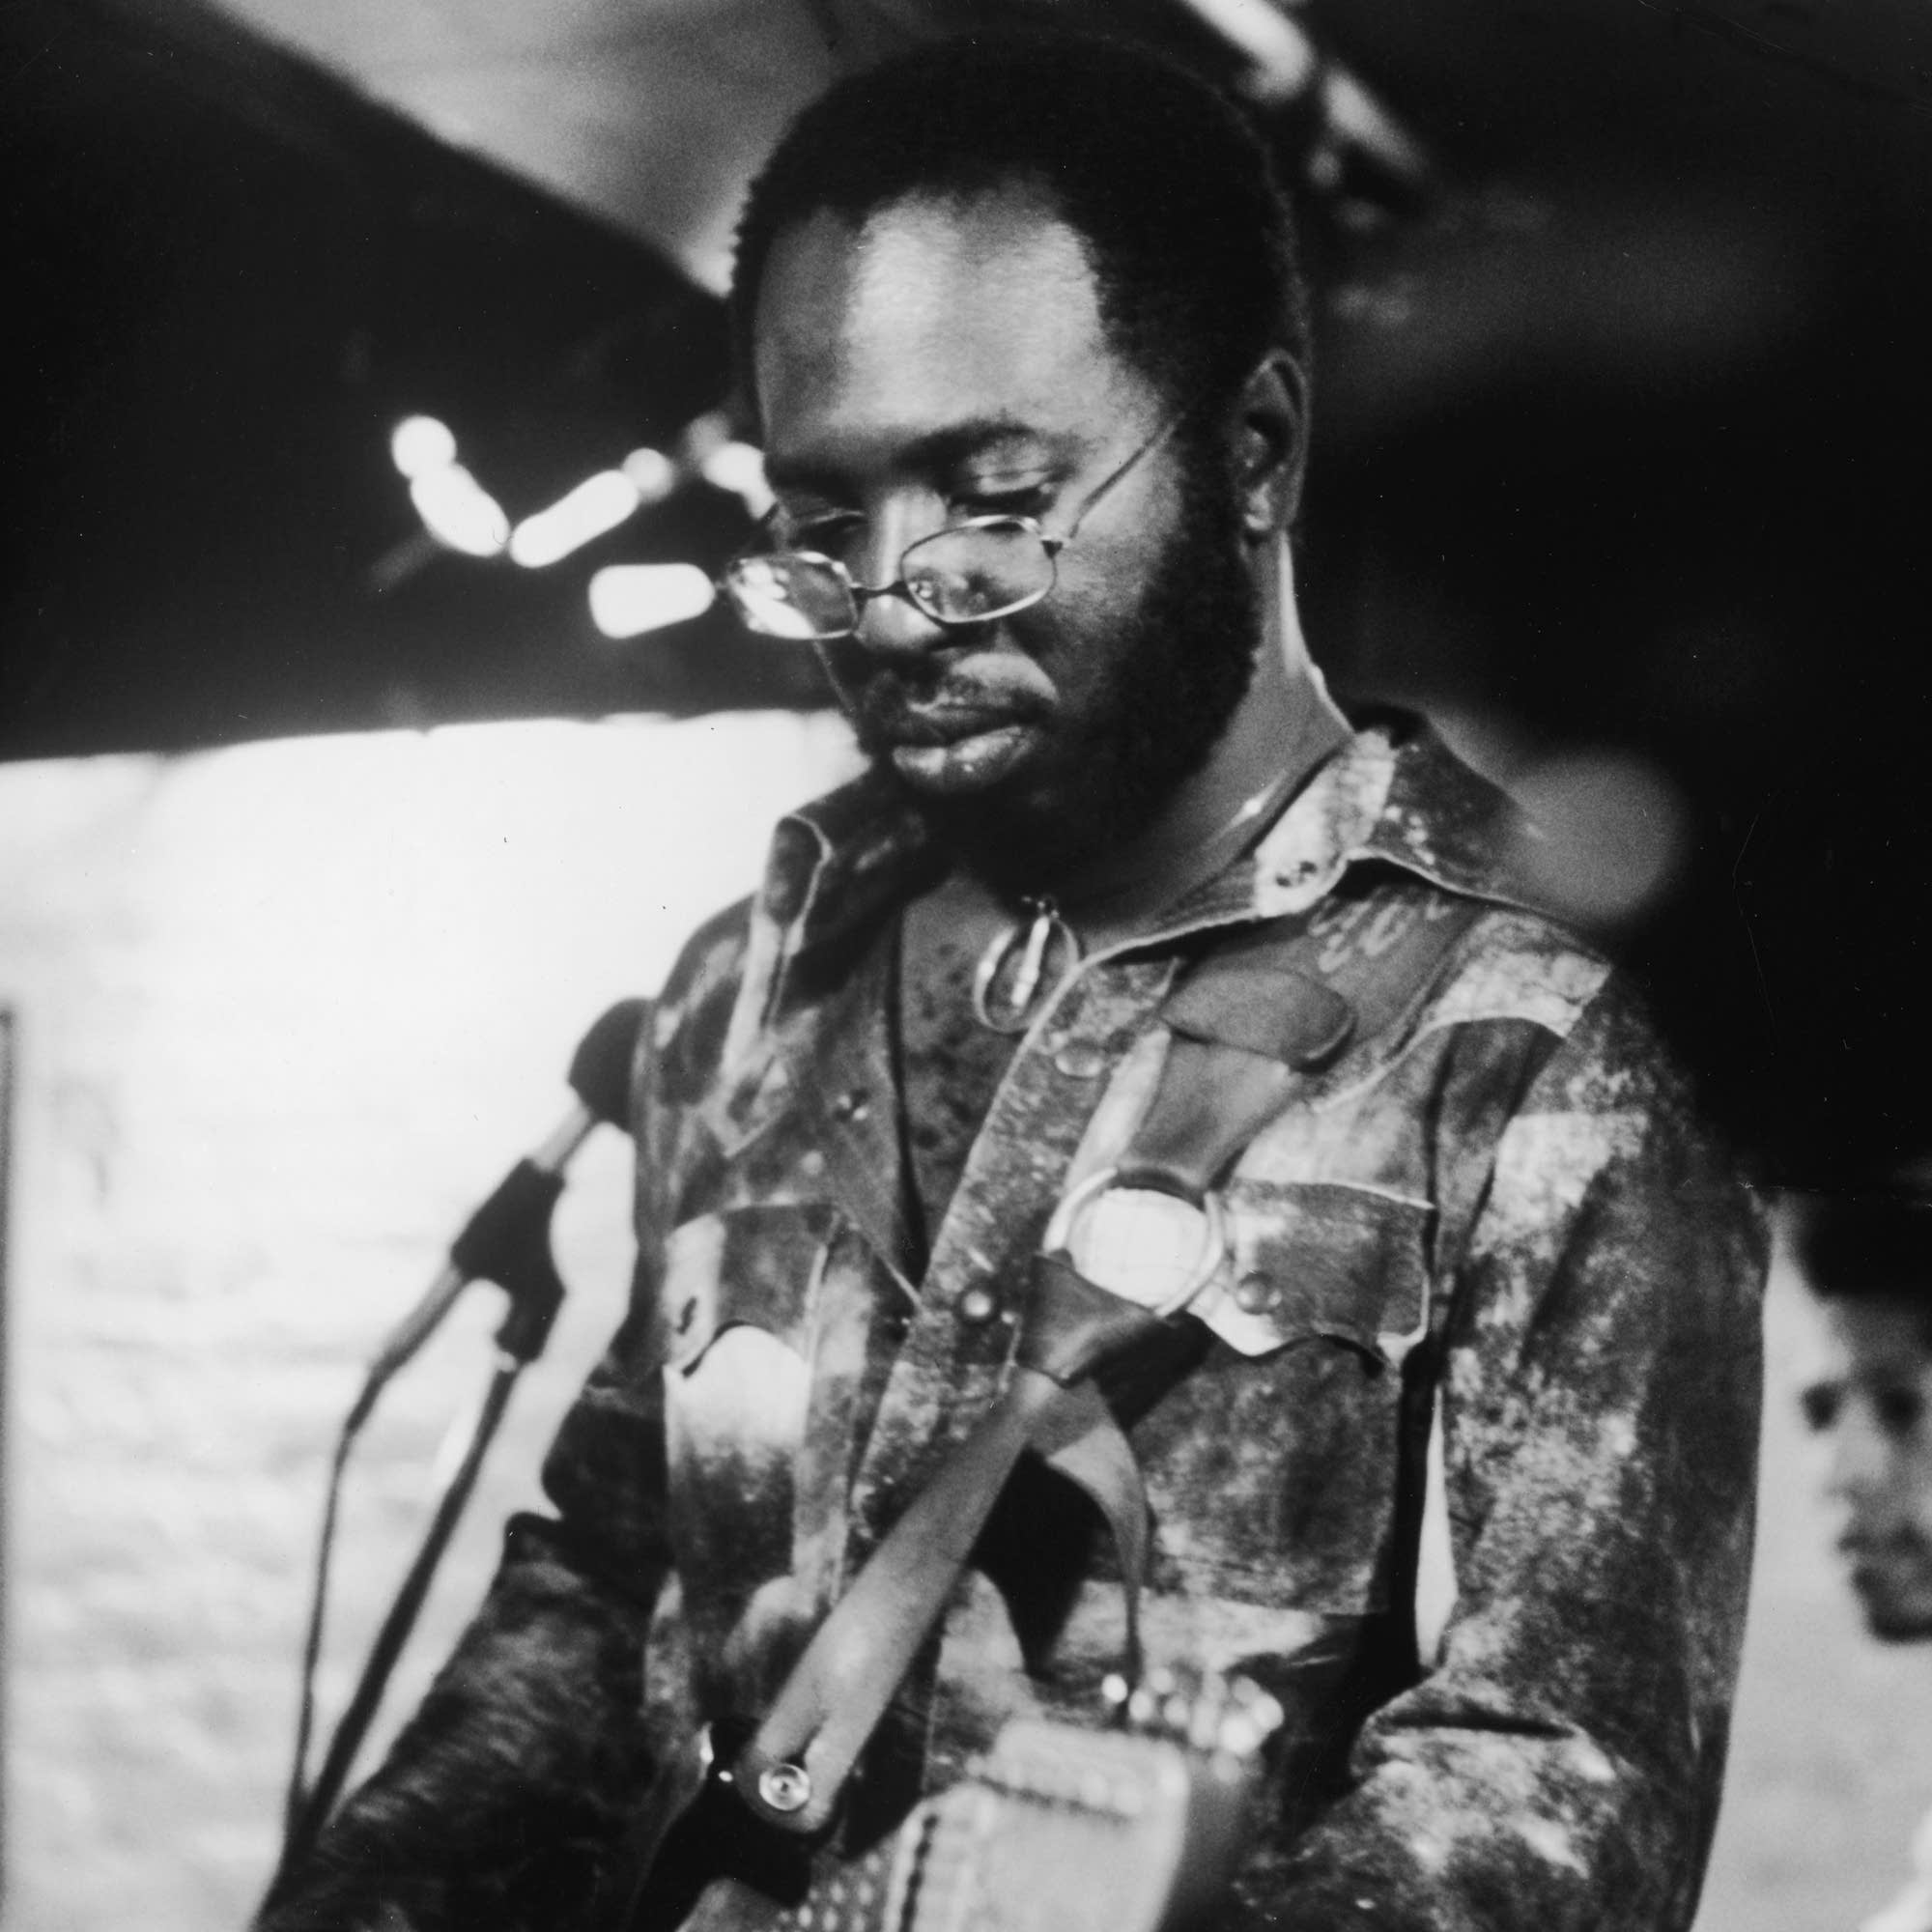 Curtis Mayfield performs in 1972.